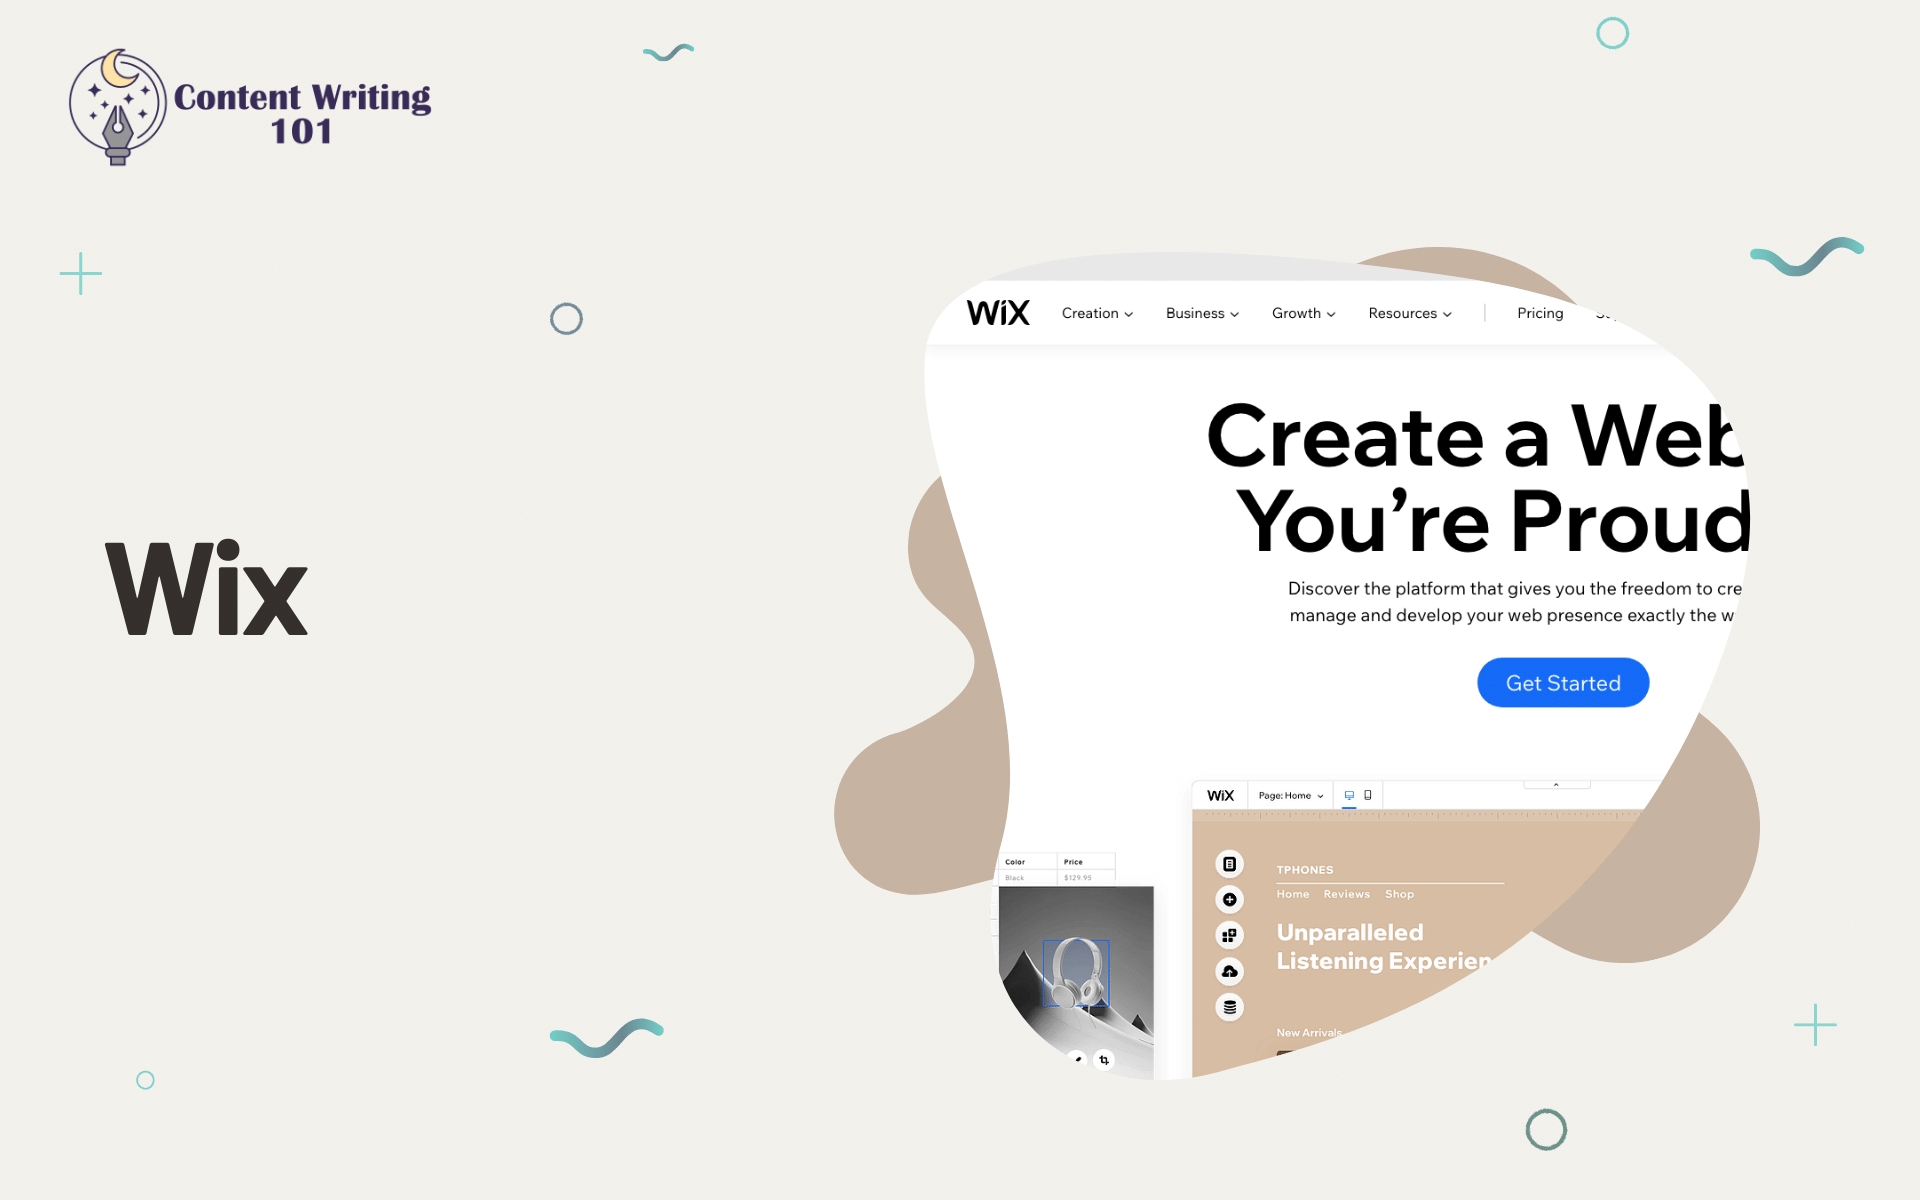 Wix Content Writing 101